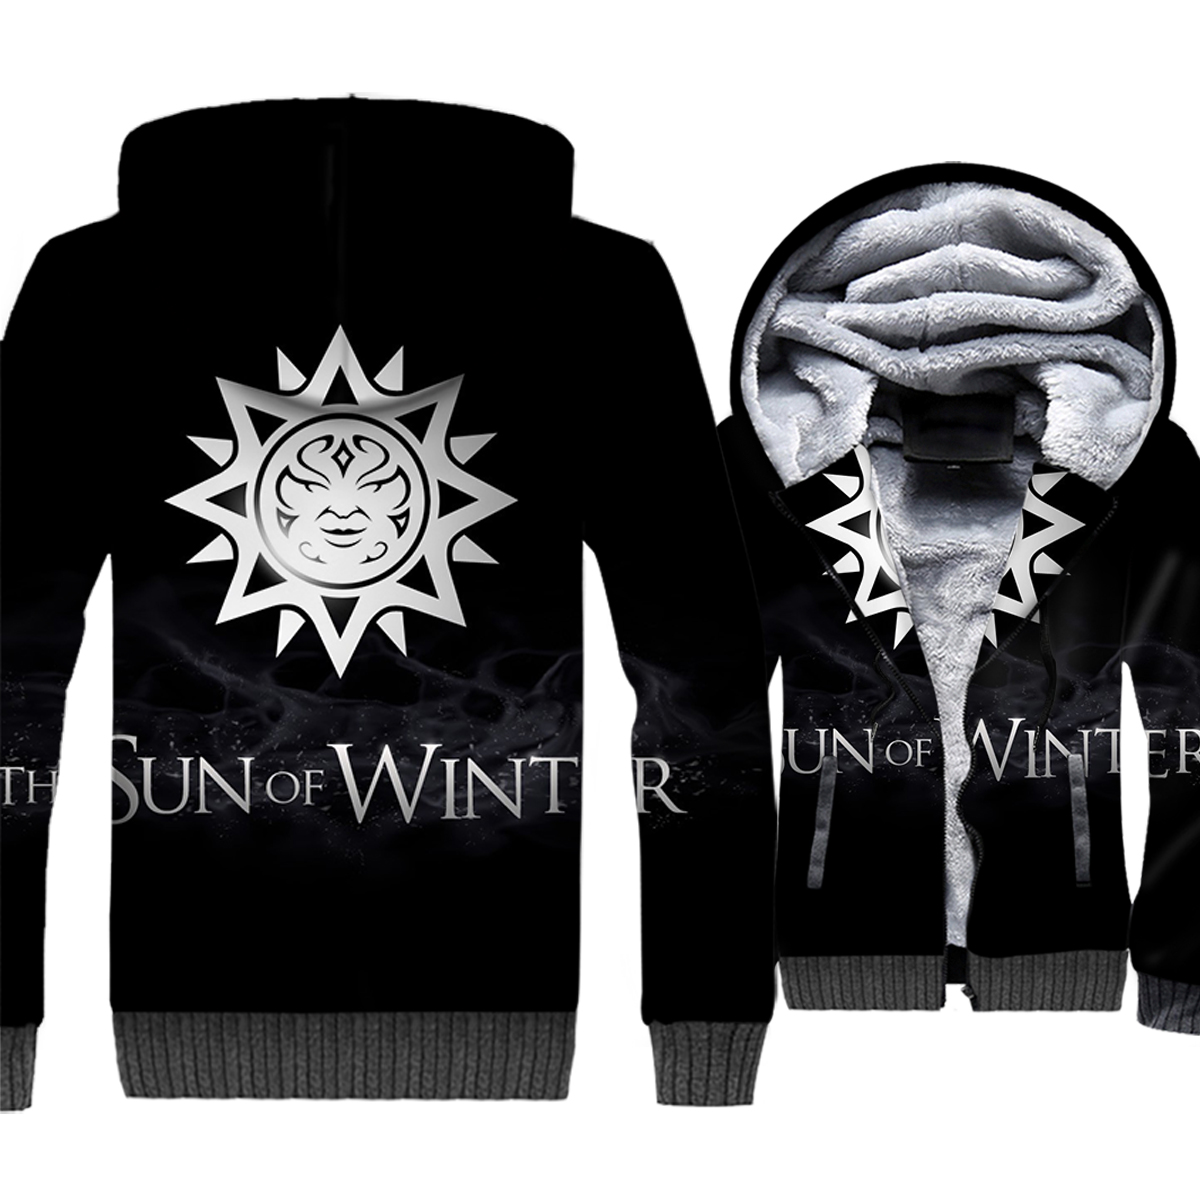 THE SUN OF WINTER Sweatshirts For Men 2018 New Autumn Jacket Zipper Coat Game Of Thrones Hip Hop Men's Hoodies Streetwear Hoody